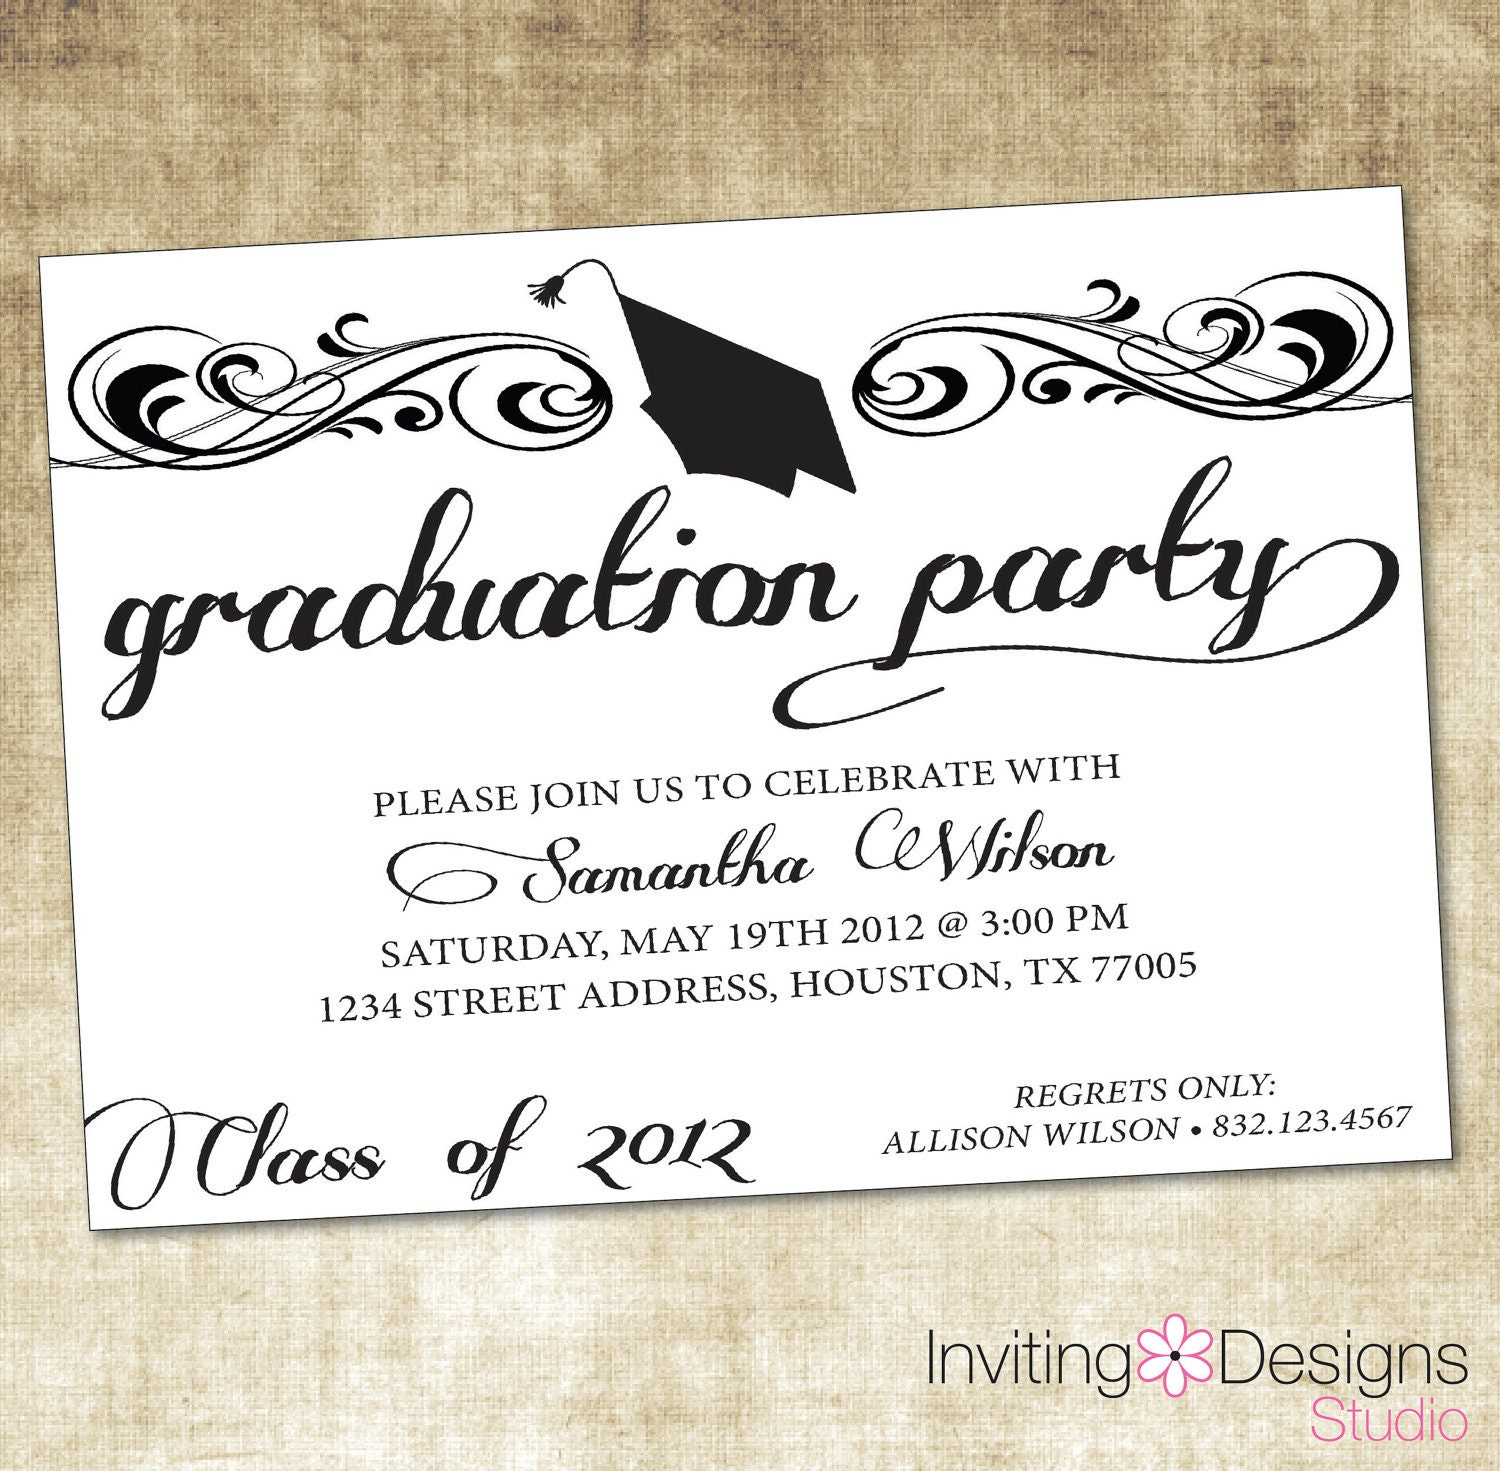 Sassy image intended for printable graduation party invitations